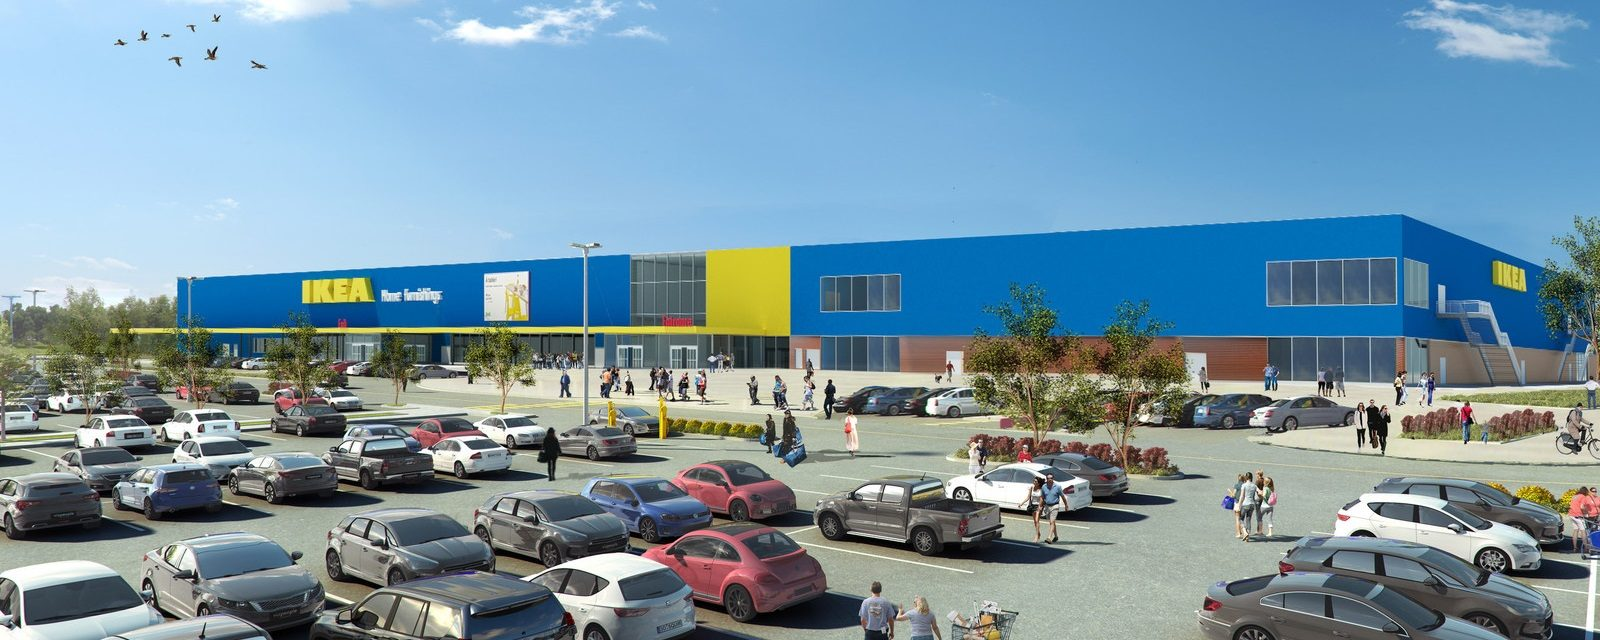 IKEA is Opening a Full-Size Store in London, Ontario - RedFlagDeals.com